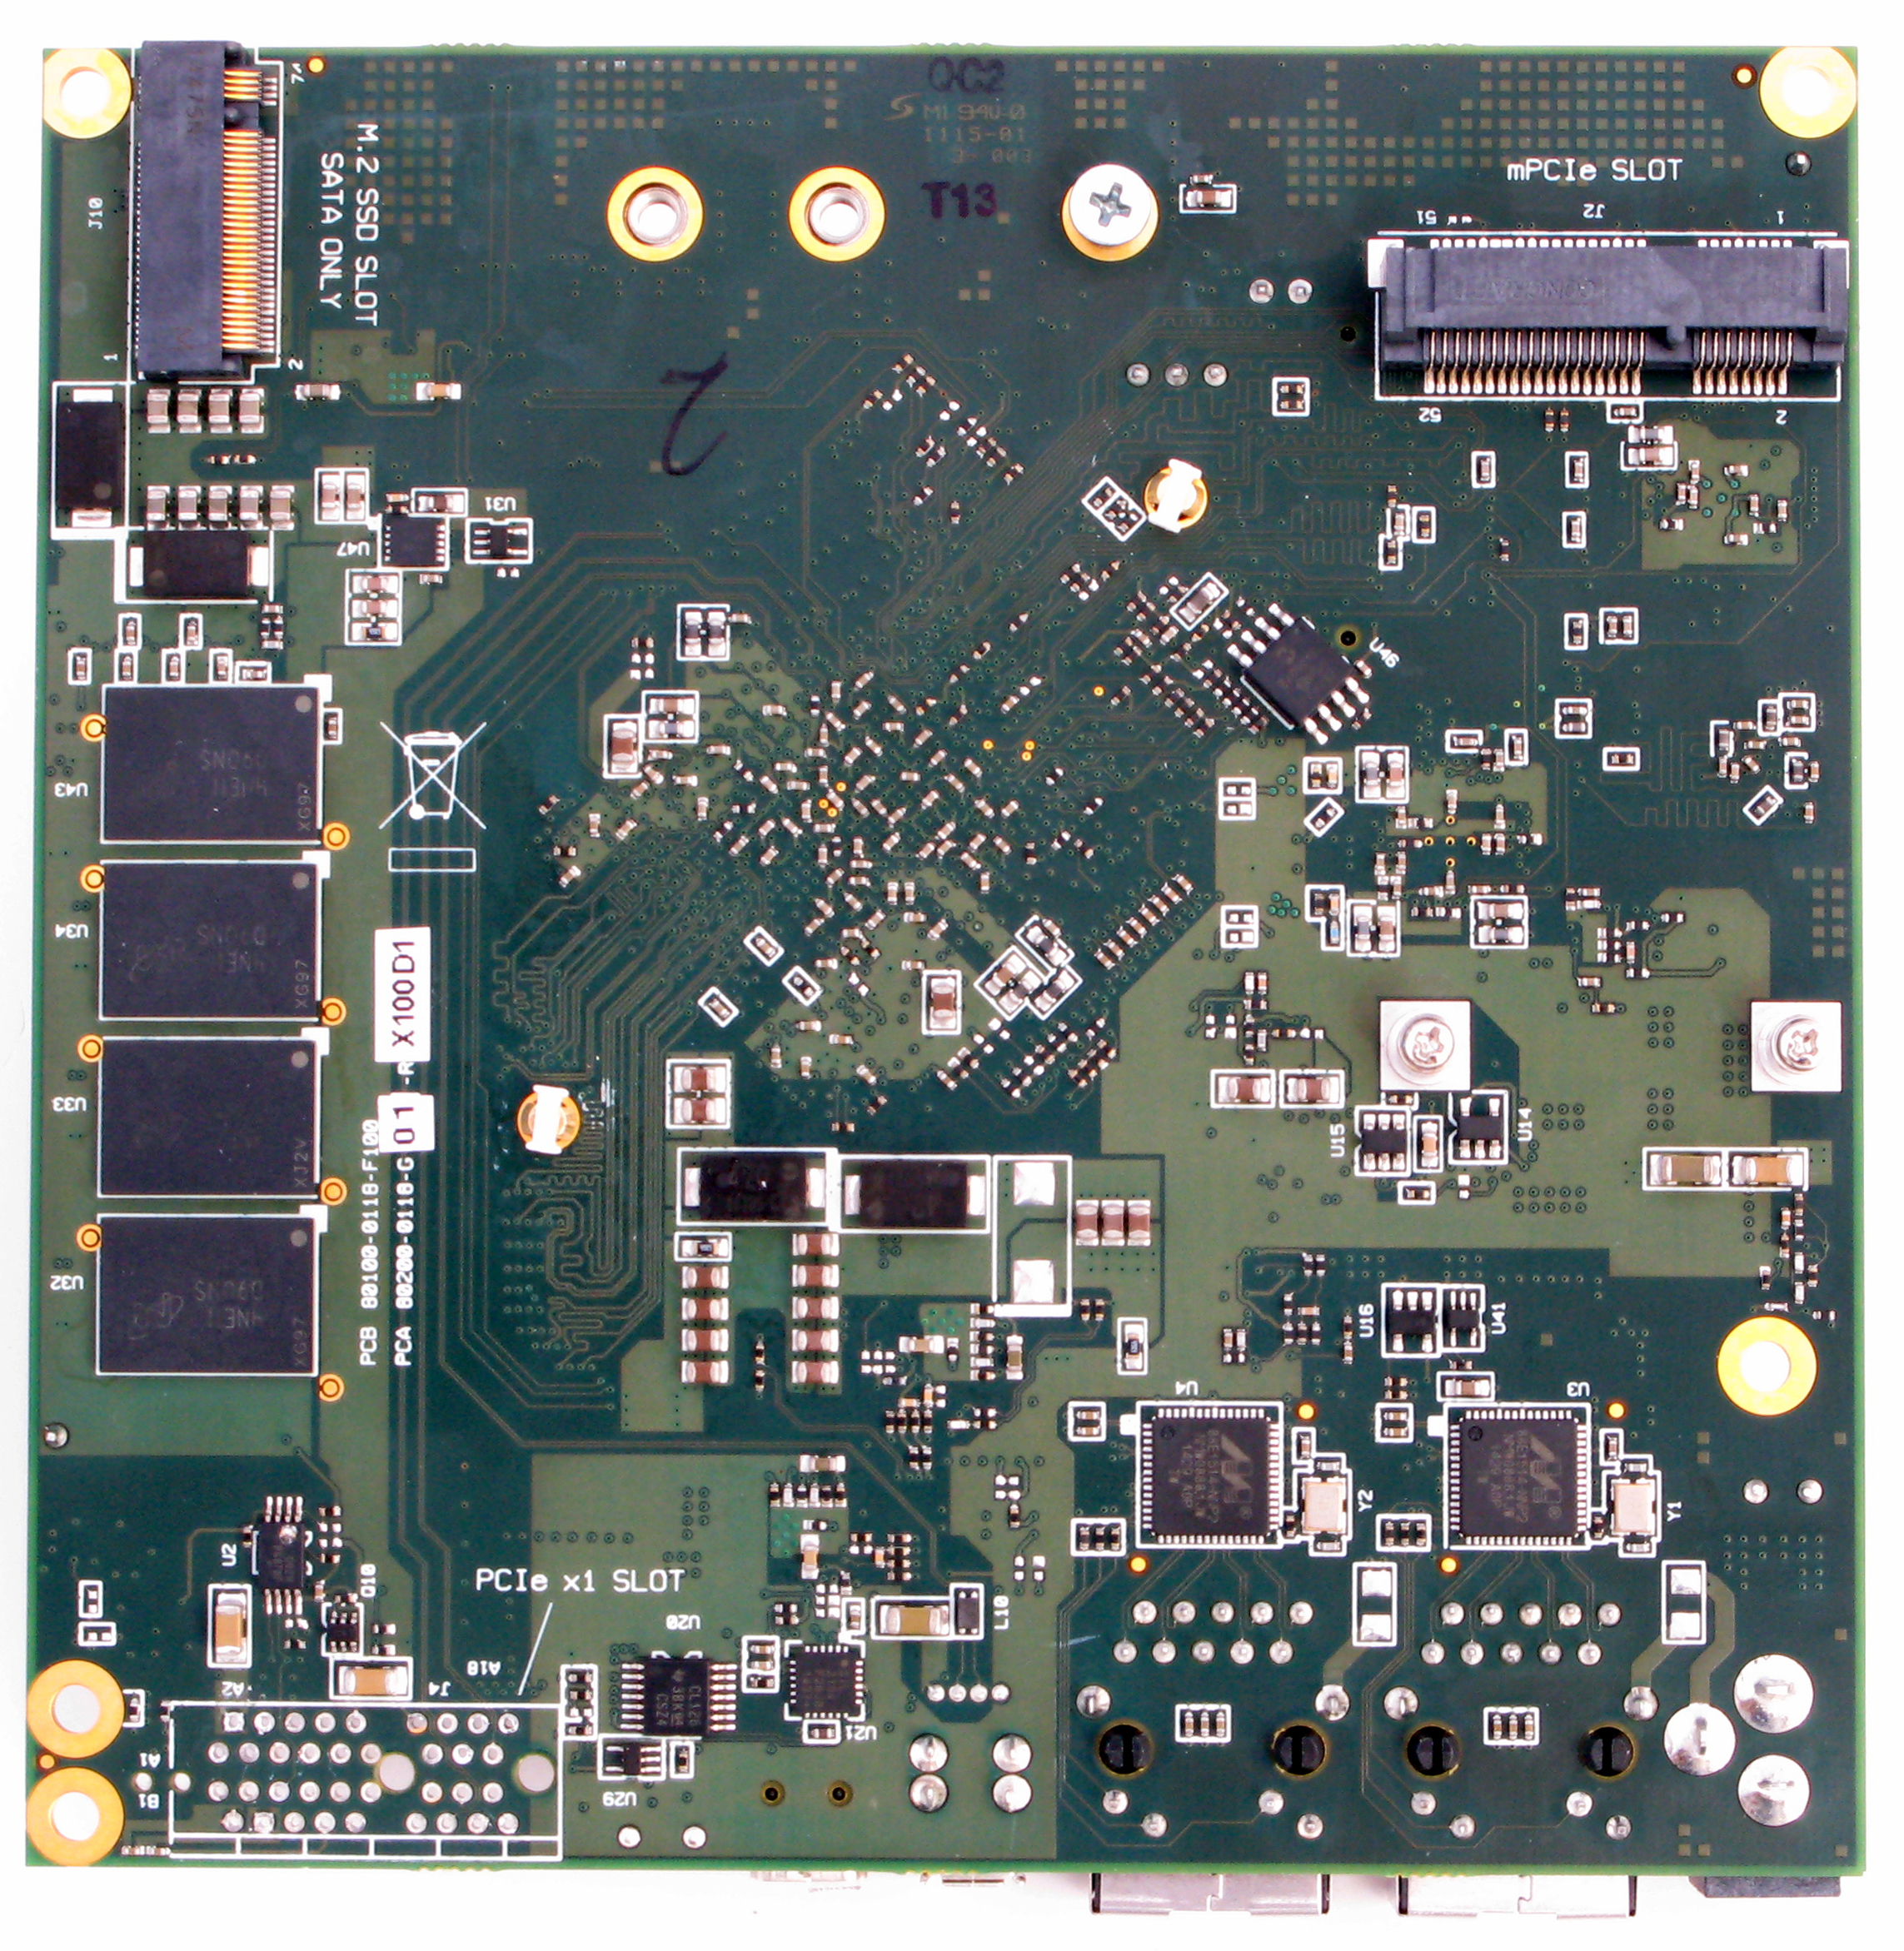 silicom rcc dff networking board